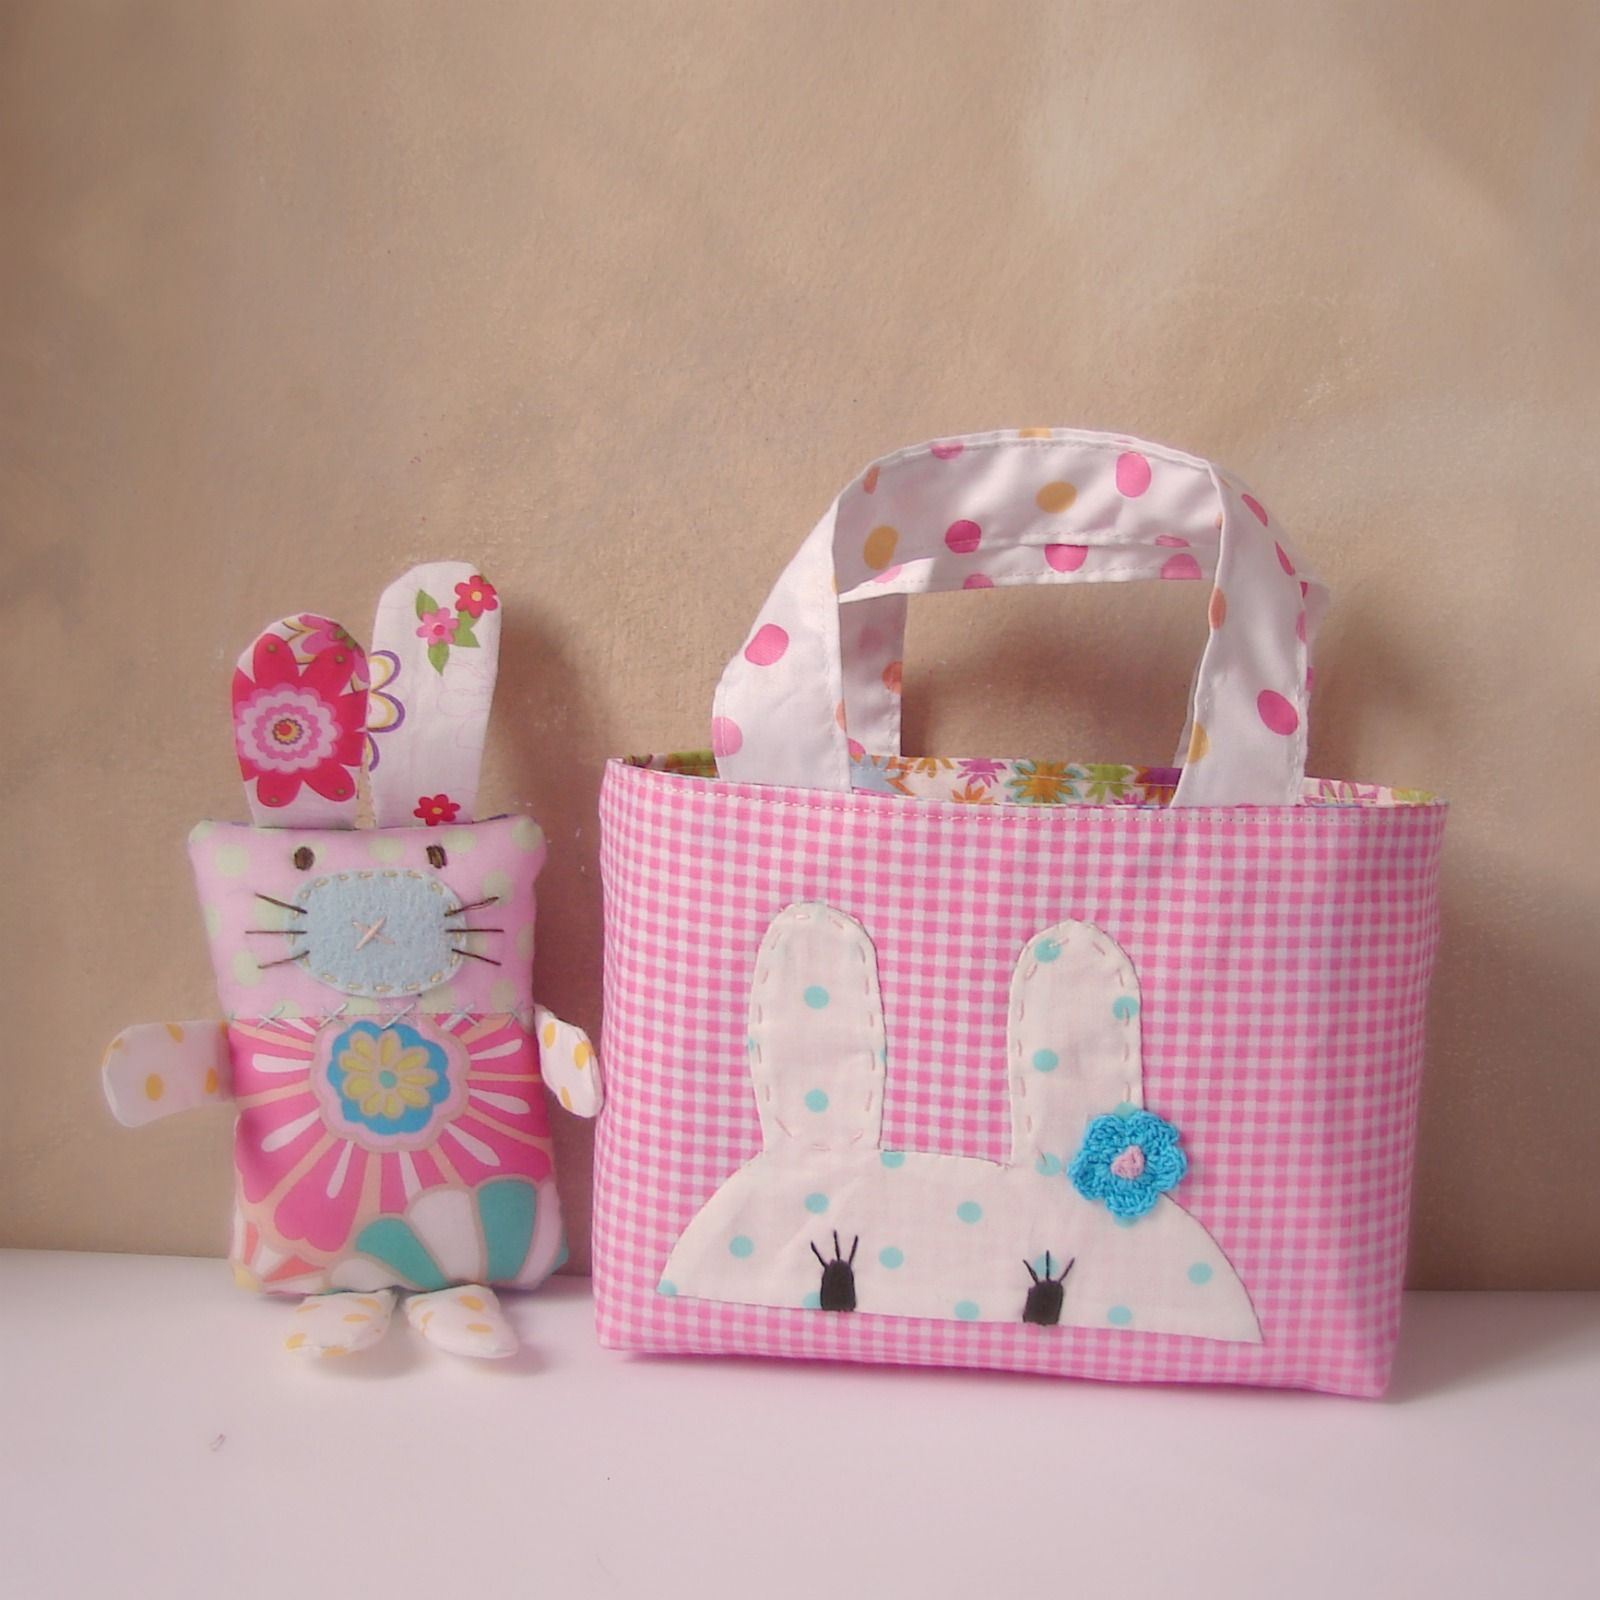 Slowly, slowly I'm making a few things in preparation for Eater. Here are my first bags and bunnies!